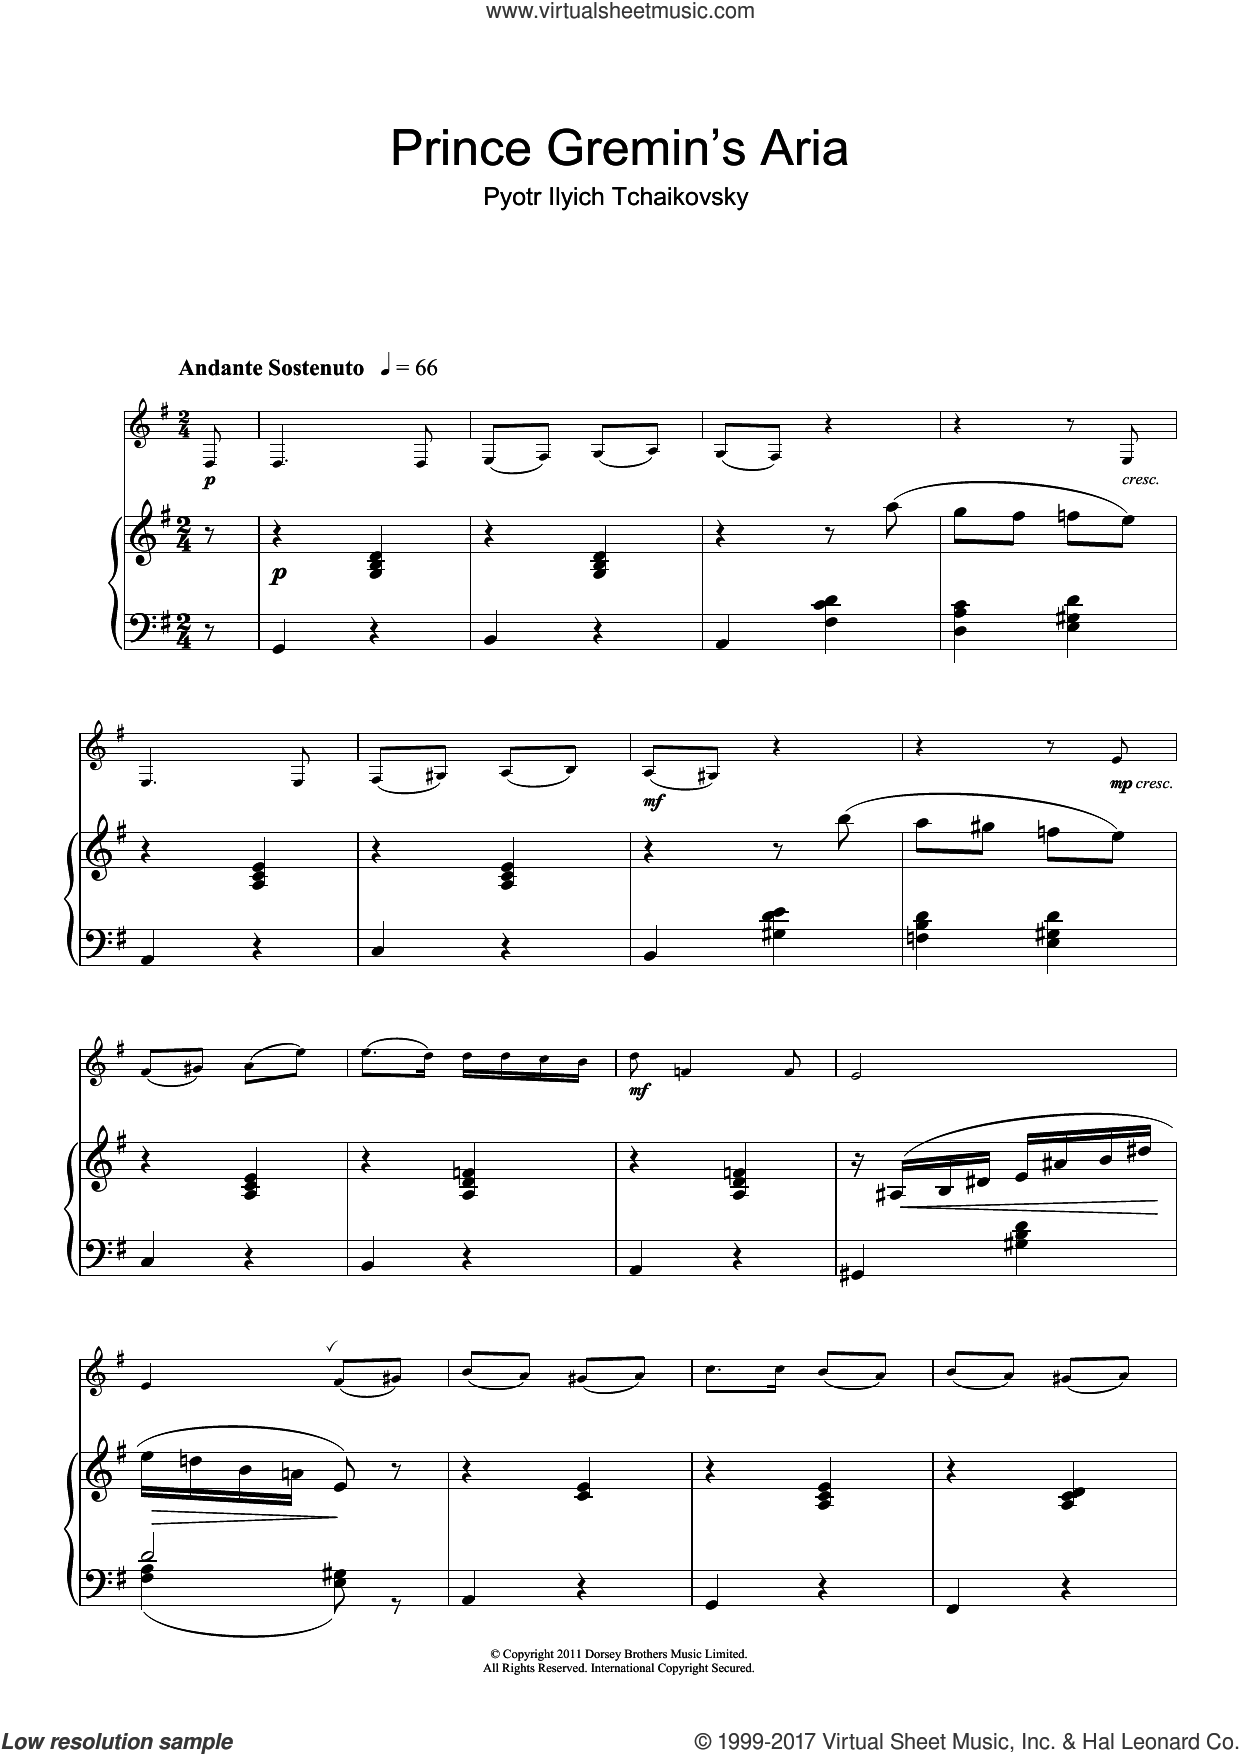 Prince Gremin's Aria (from Eugene Onegin) sheet music for clarinet solo by Pyotr Ilyich Tchaikovsky, classical score, intermediate skill level